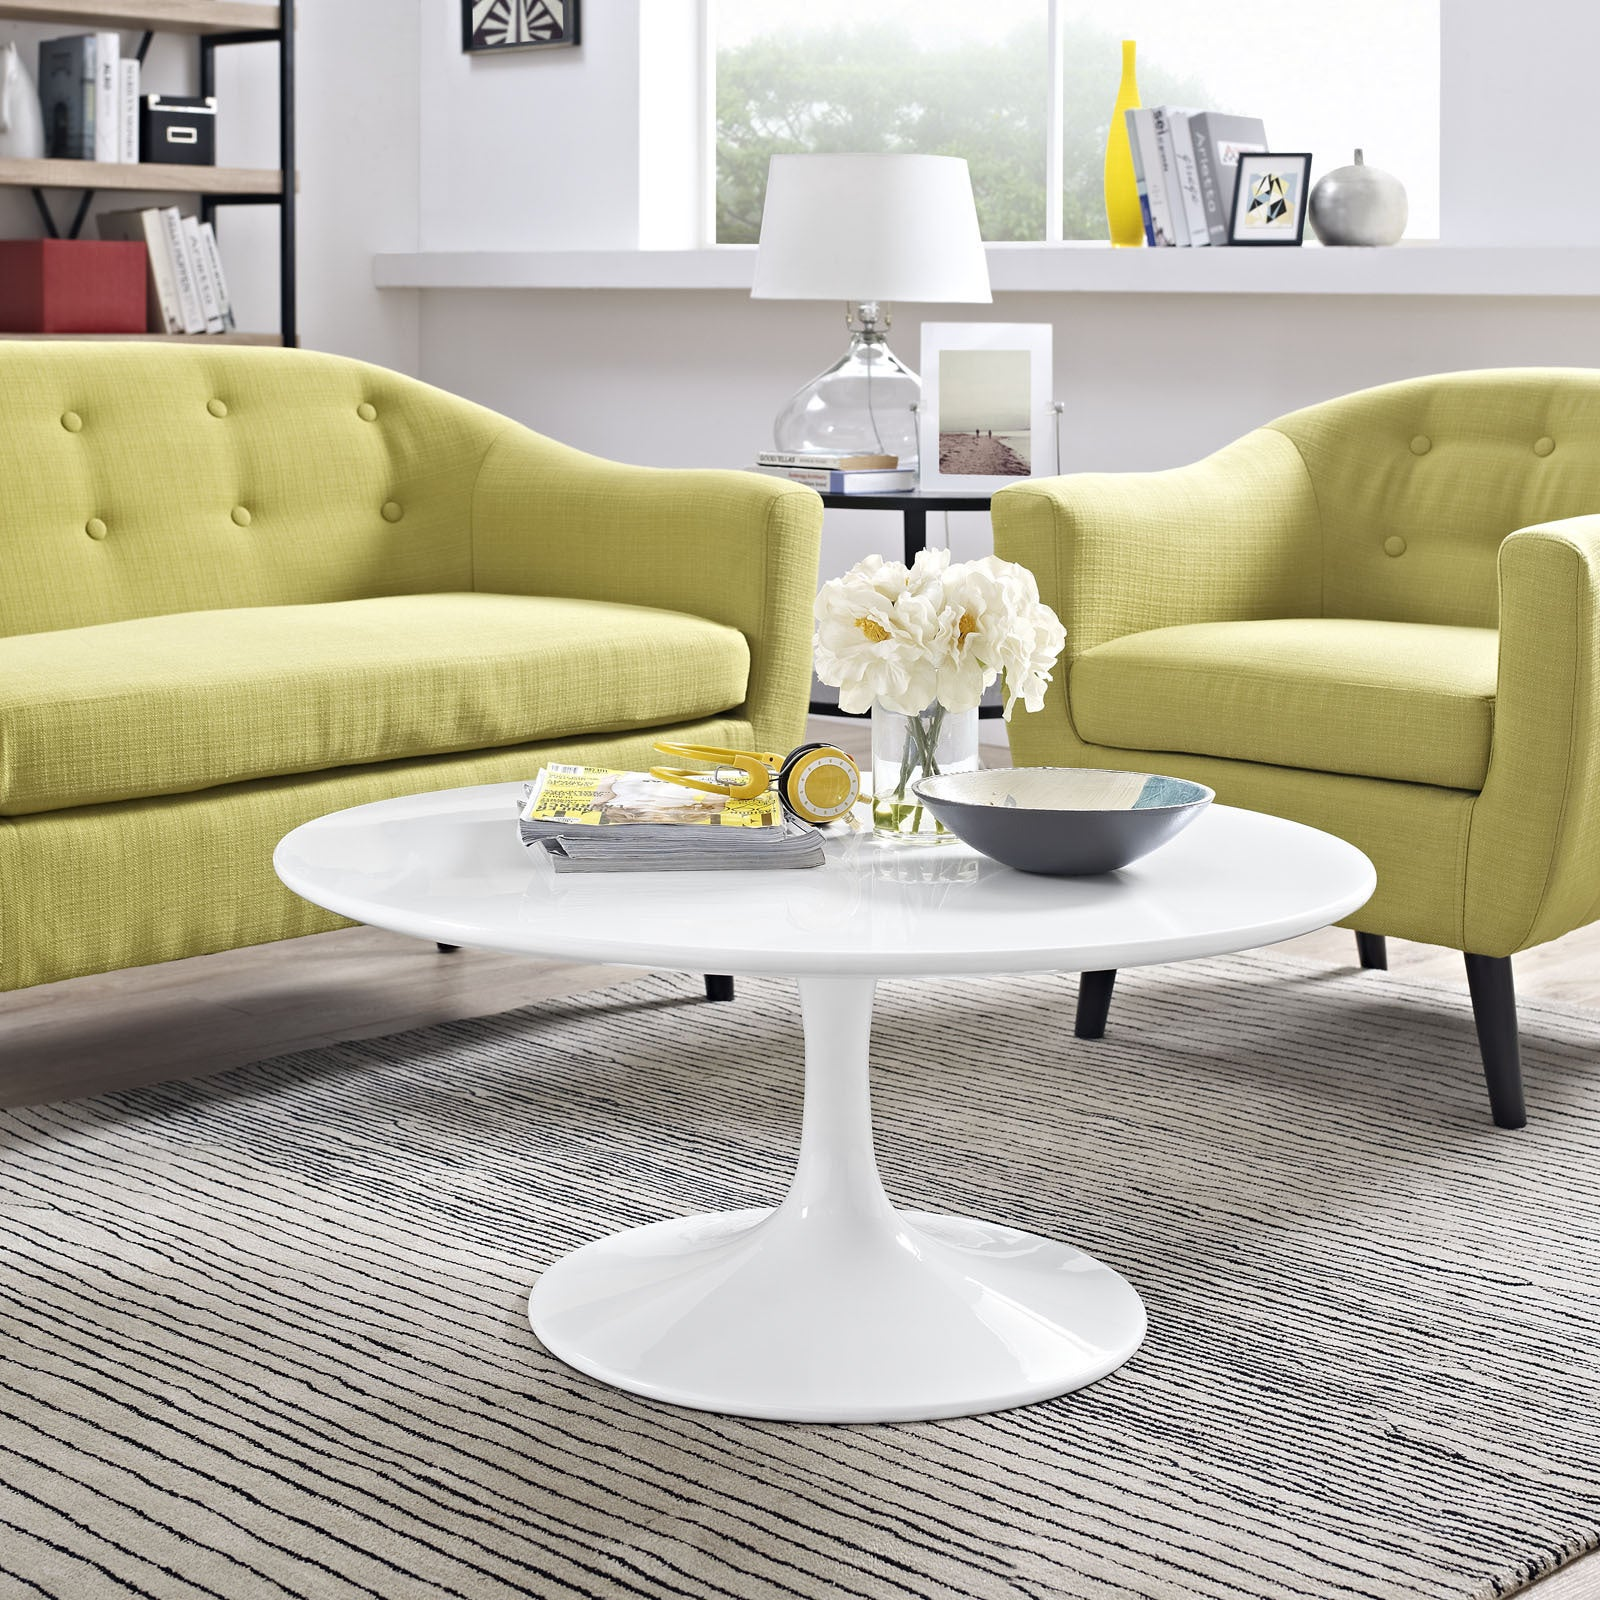 Progress White 36 Inch Round Coffee Table On Free Shipping Today 10163941